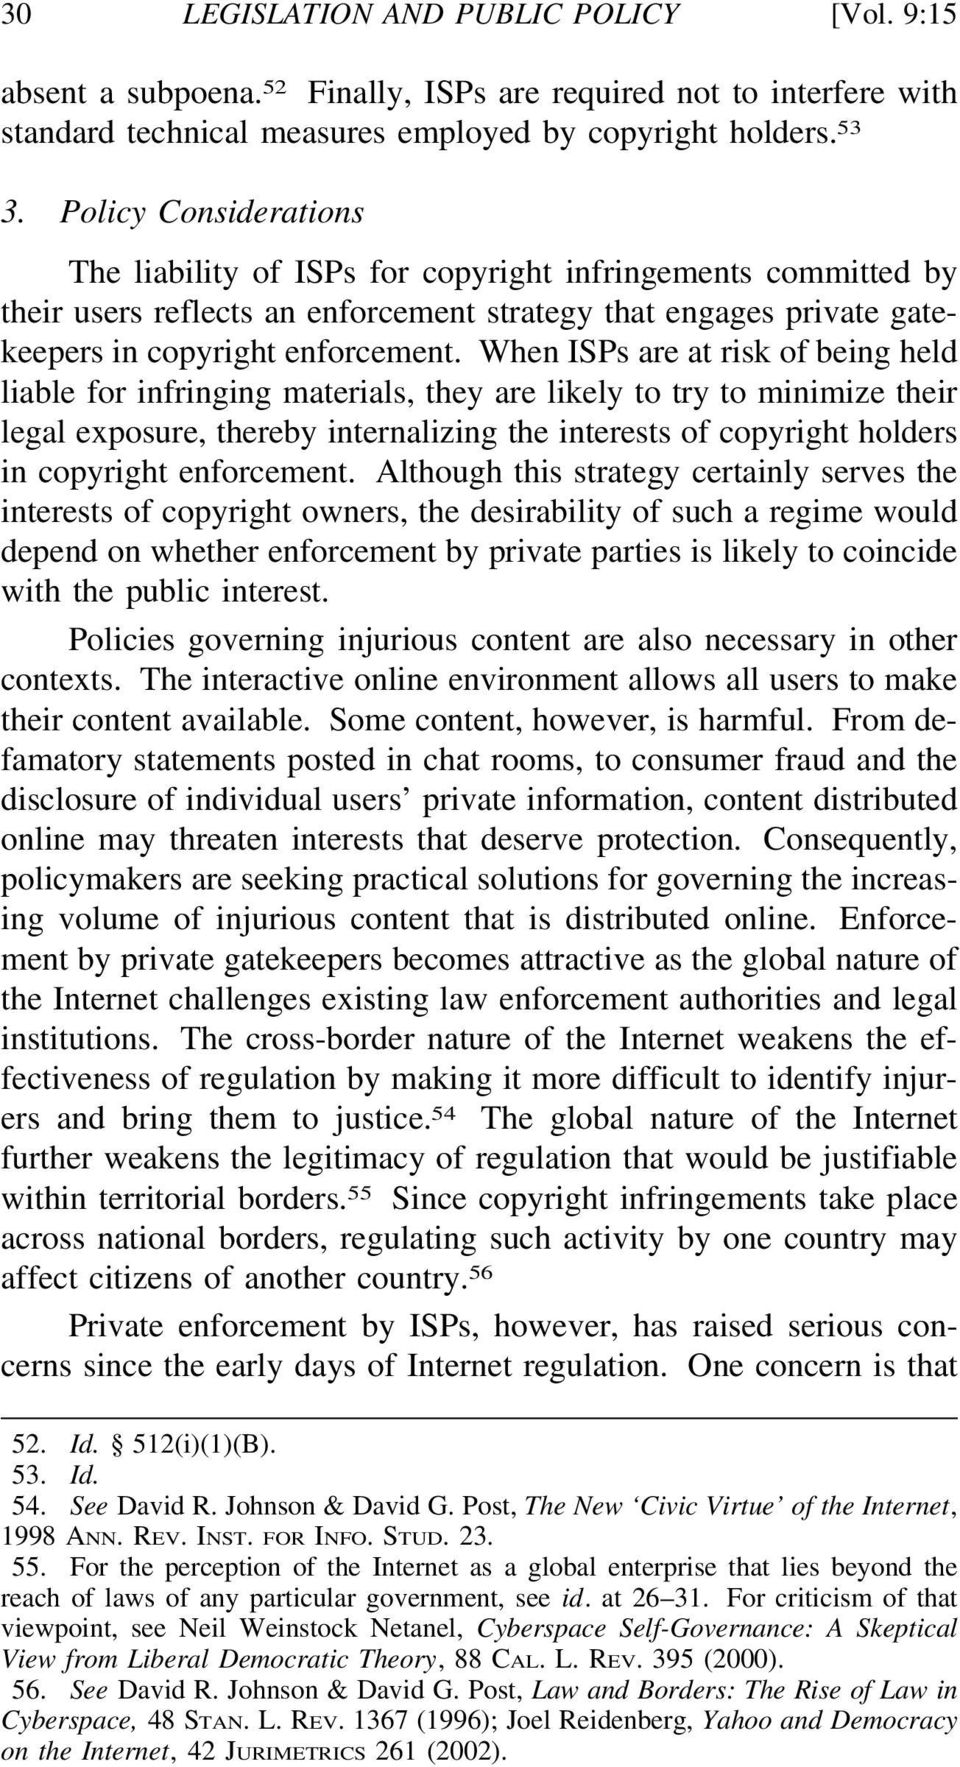 When ISPs are at risk of being held liable for infringing materials, they are likely to try to minimize their legal exposure, thereby internalizing the interests of copyright holders in copyright